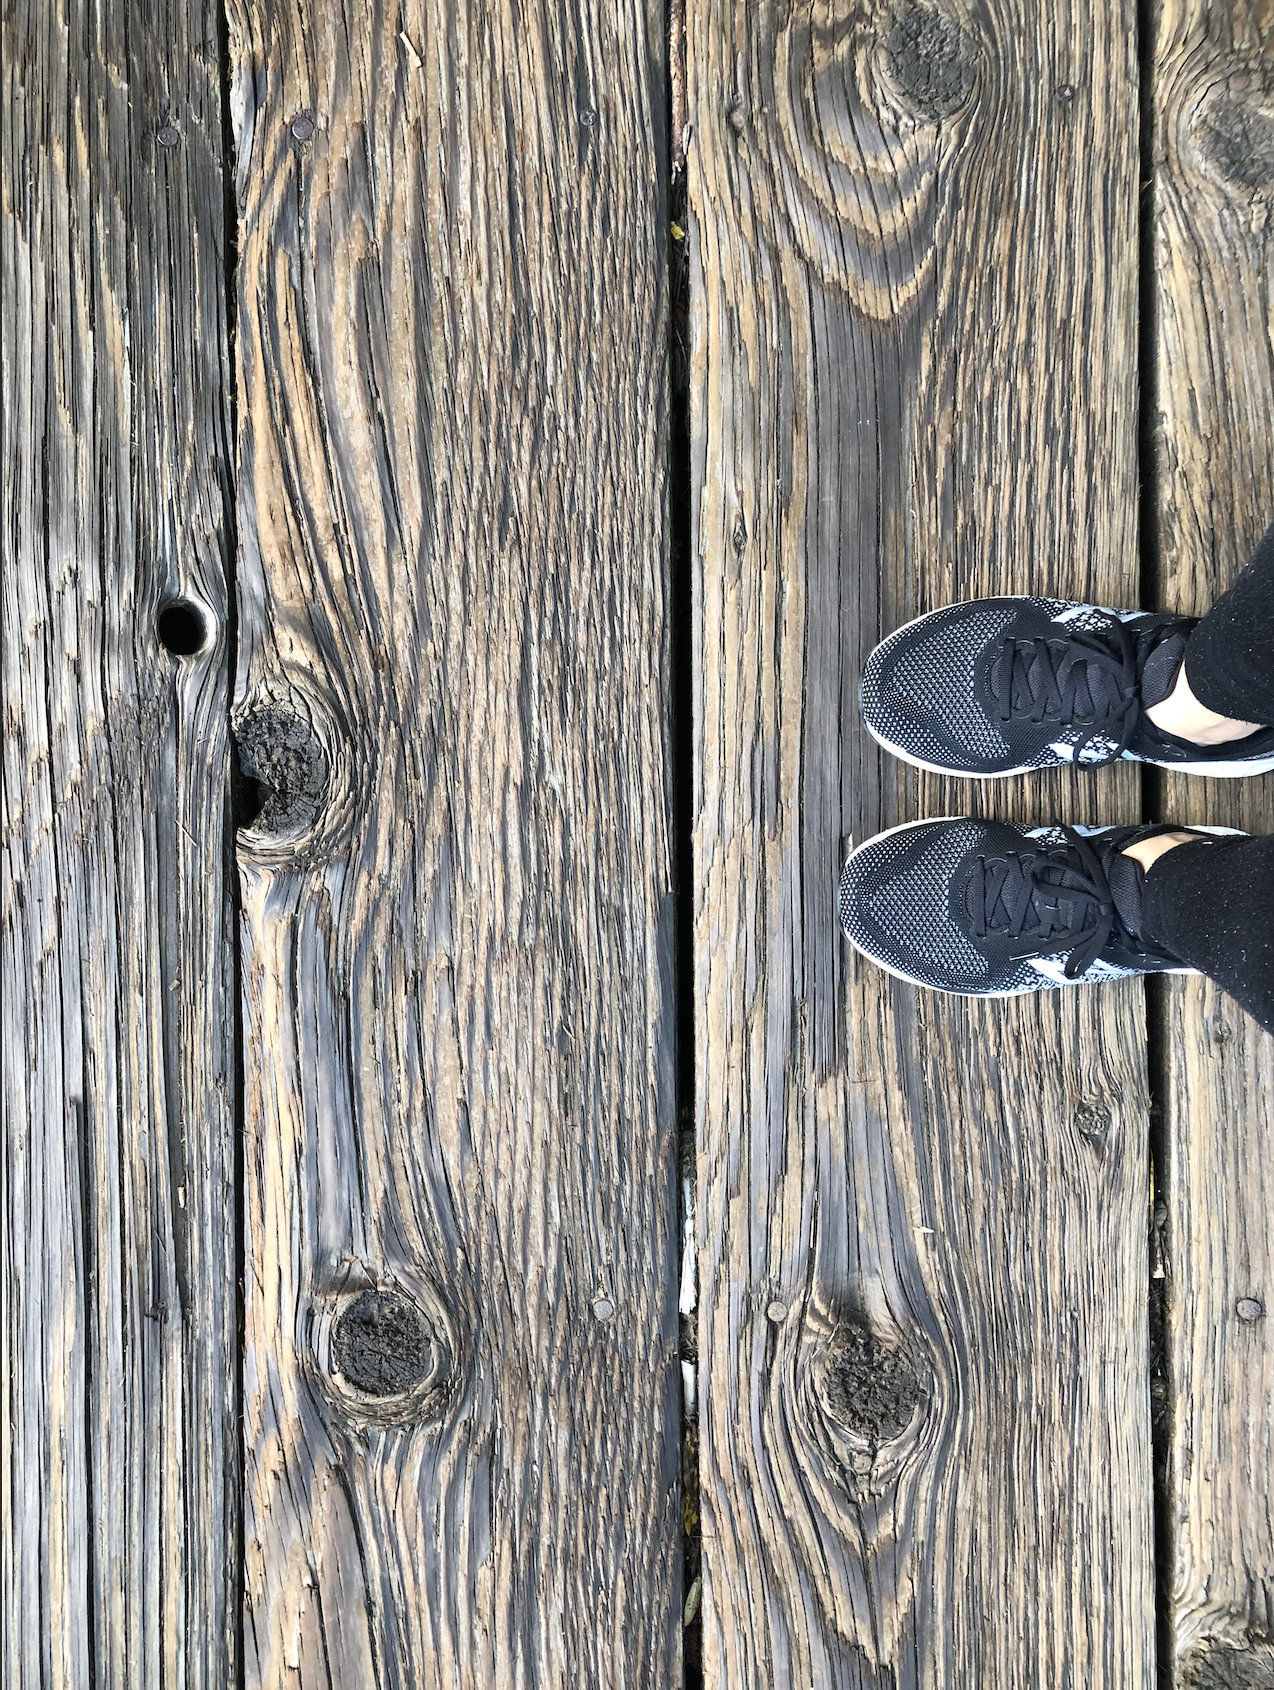 The June edition of ACT on 2021; a pair of running shoes on a wooden bridge, as a way of remembering to be human in new interactions.